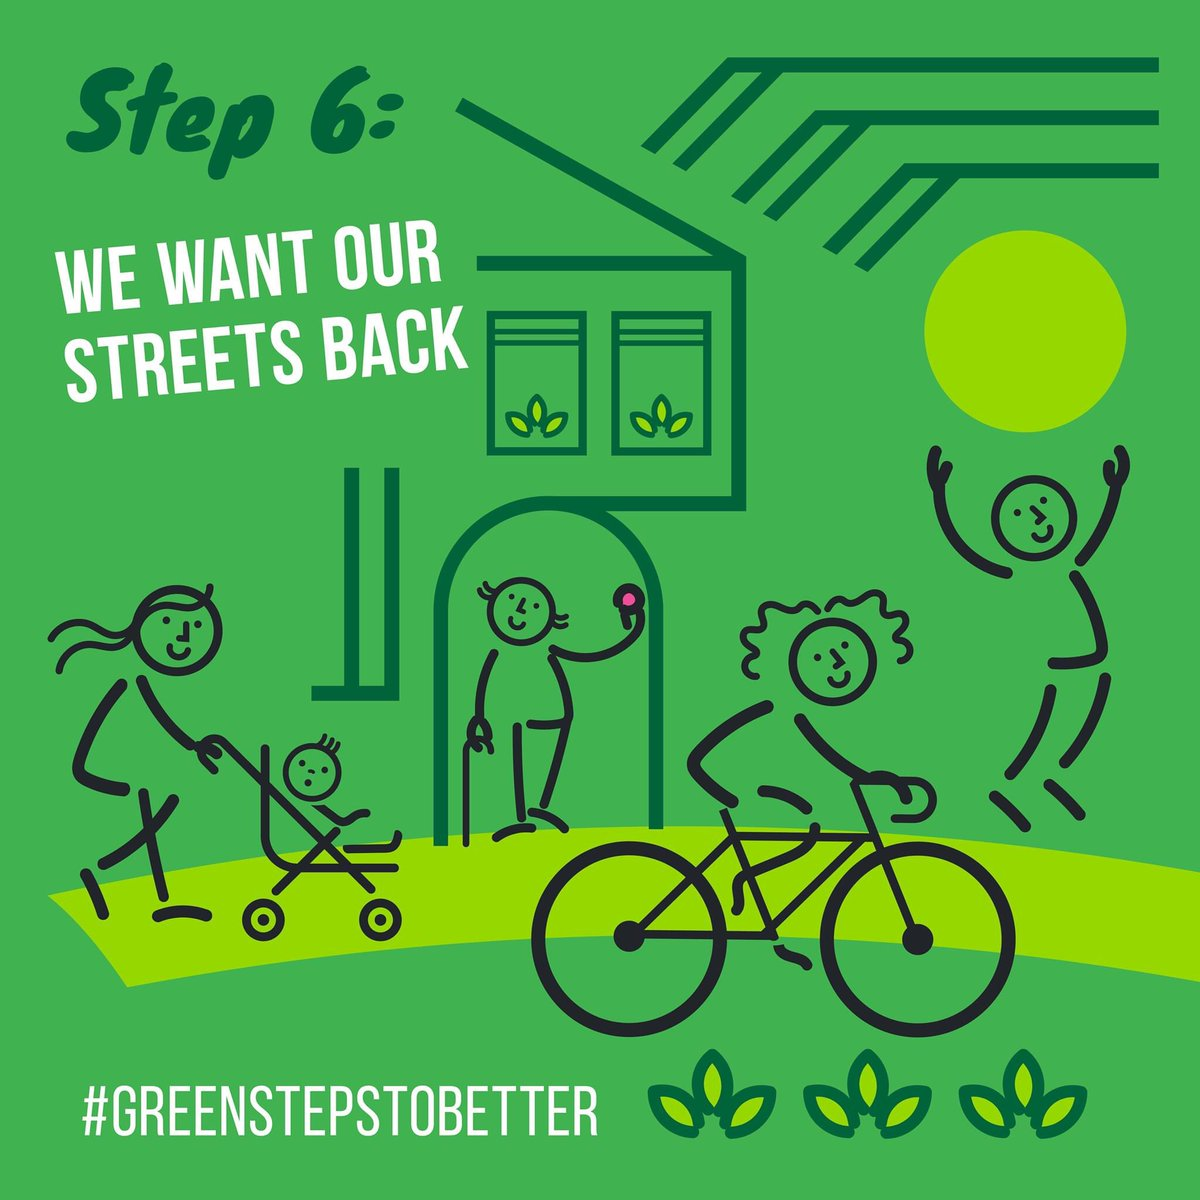 Whats that sound? Quiet? Birdsong? More time at home and less on the road means were all enjoying life without the noise, pollution and collisions. @Carolinelucas #greenstepstobetter 💚🌍 STEP 6: SAFER STREETS AND CLEANER AIR: reclaiming our streets for cycling and walking.